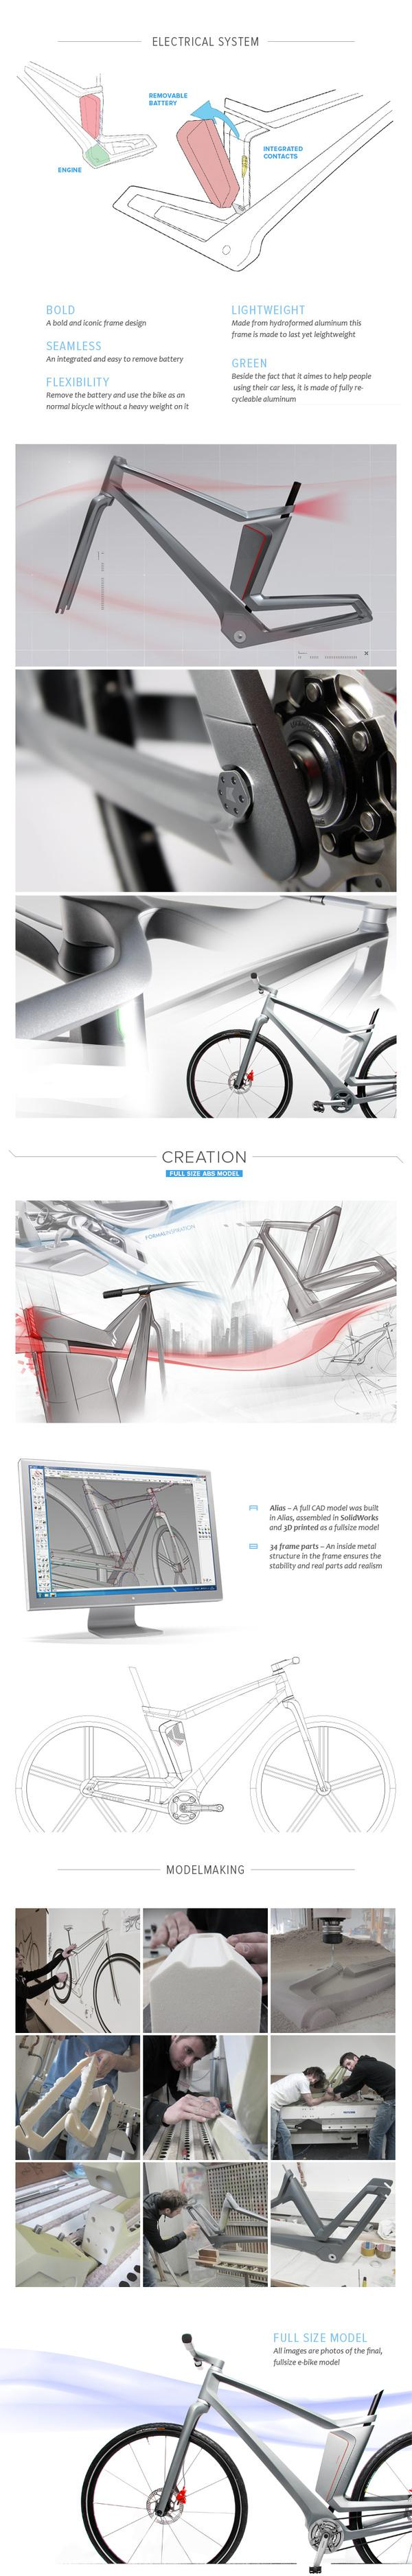 KETTLER e-Bike eMotion Concept